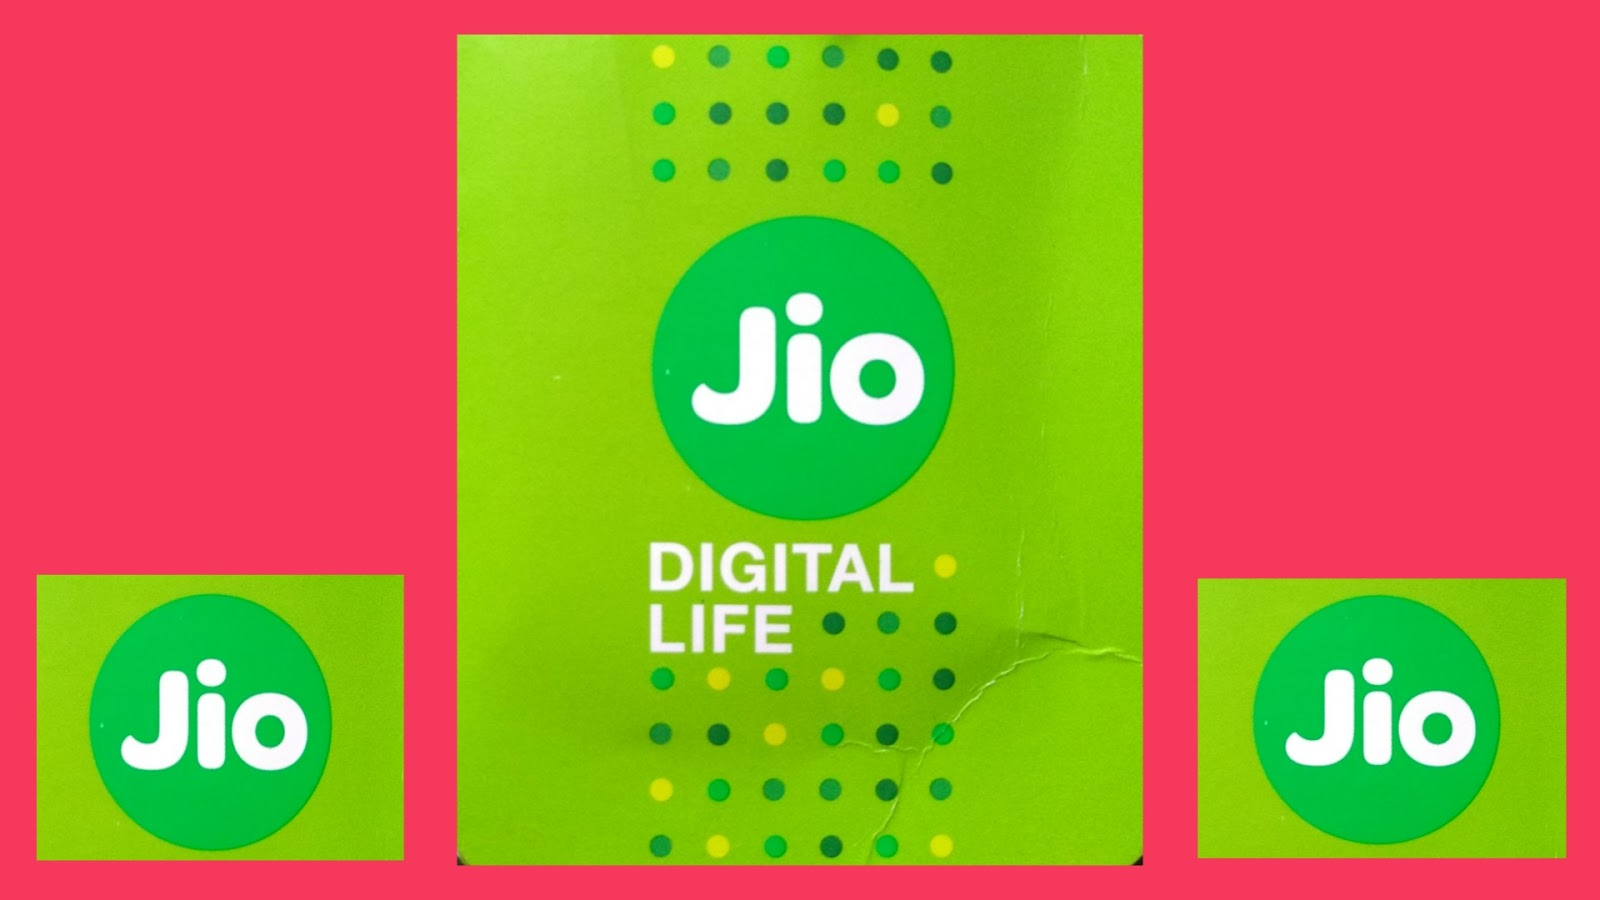 Jio Sim Recharge Plan Full Details, Jio 4g Data Plan, Letest Jio Offers And Plans, Jio Daily Plans, Jio 4G Letest News, Jio Sim Recharge Plan Full Details In Hindi, Jio Sim Recharge Plans, Jio All Updates, Jio Sim All Plans Details, Letest Jio Plans